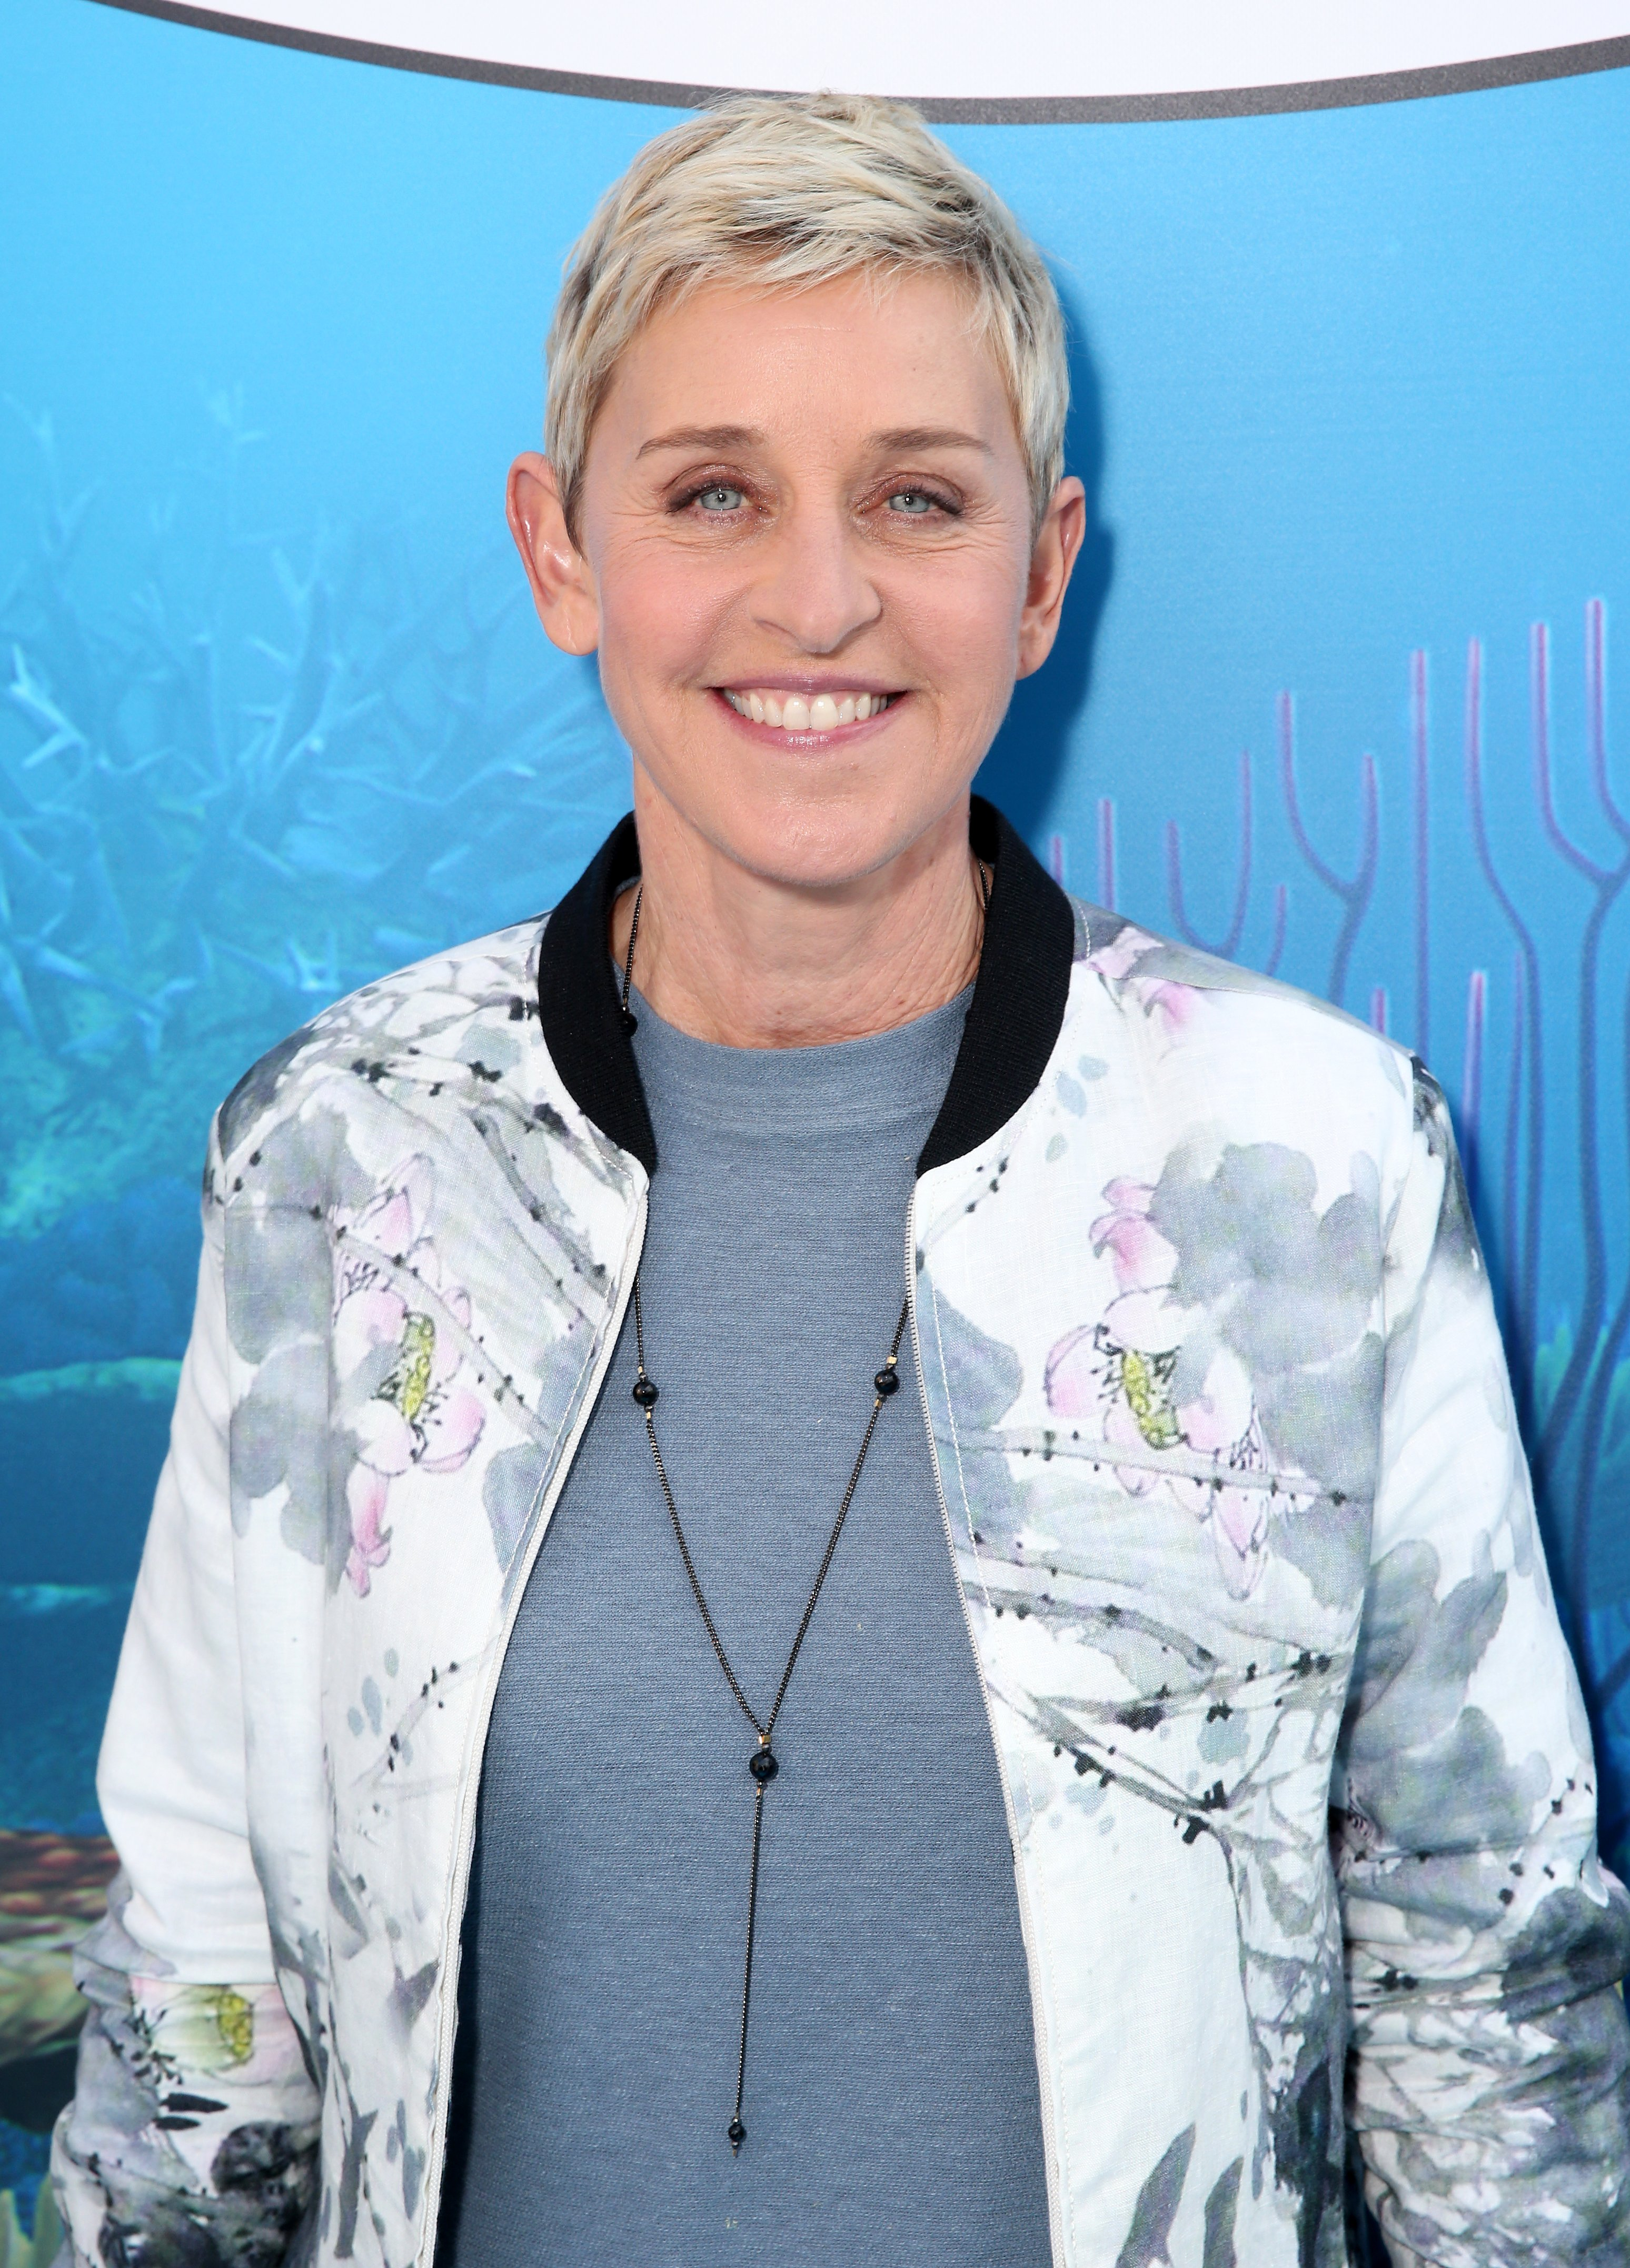 Image Source: Getty Images| Photo of Ellen in an event